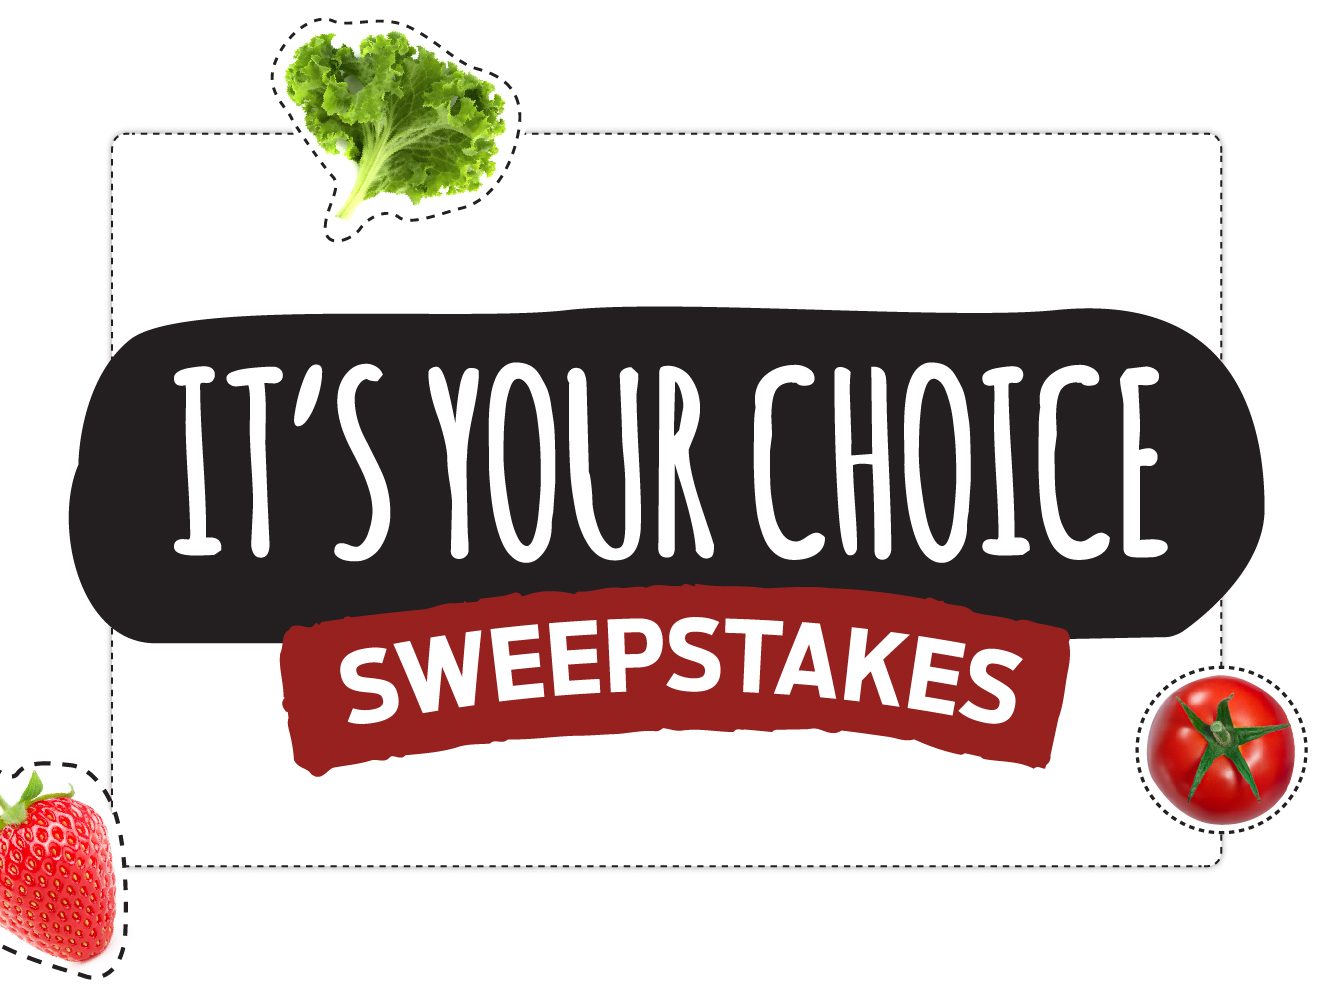 It's Your Choice Sweepstakes